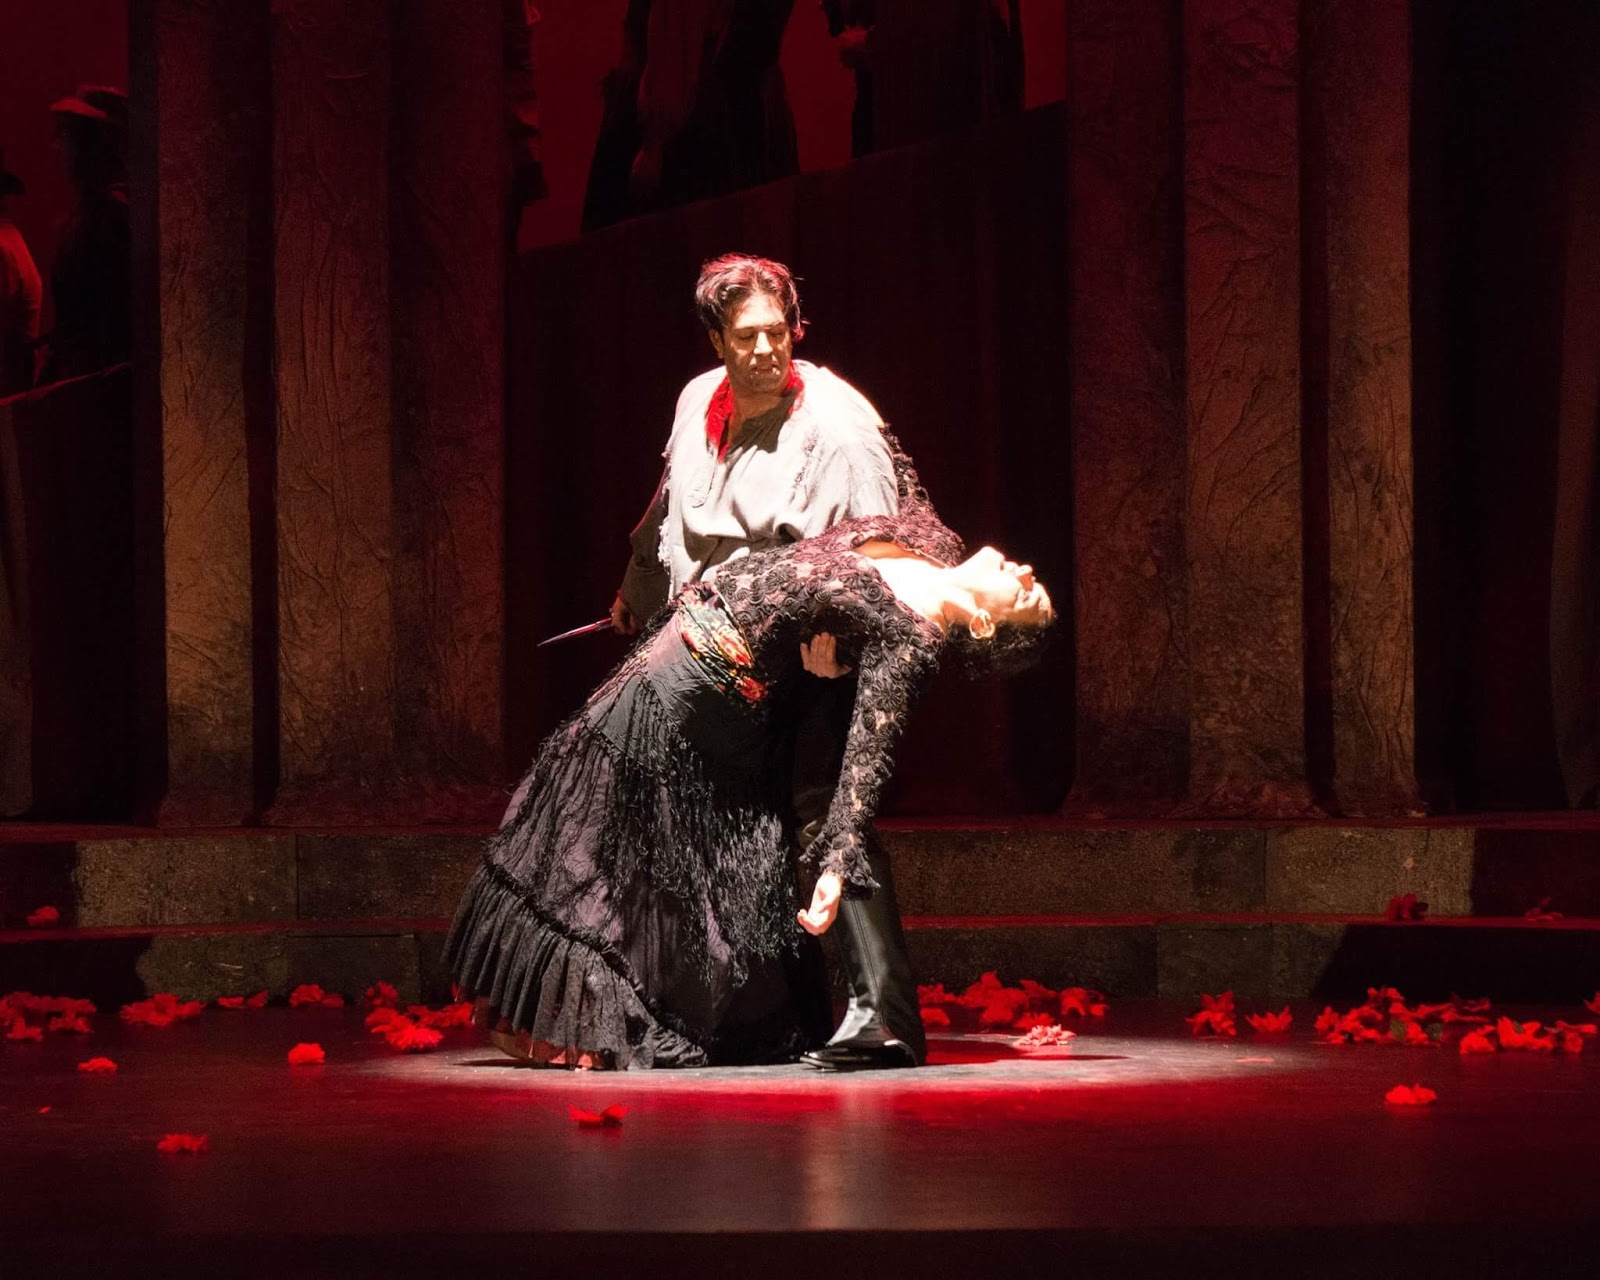 IN PERFORMANCE: Mezzo-soprano SANDRA PIQUES EDDY as Carmen and tenor DINYAR VANIA as Don José in Greensboro Opera's production of Georges Bizet's CARMEN, January 2017 [Photo © by Greensboro Opera]